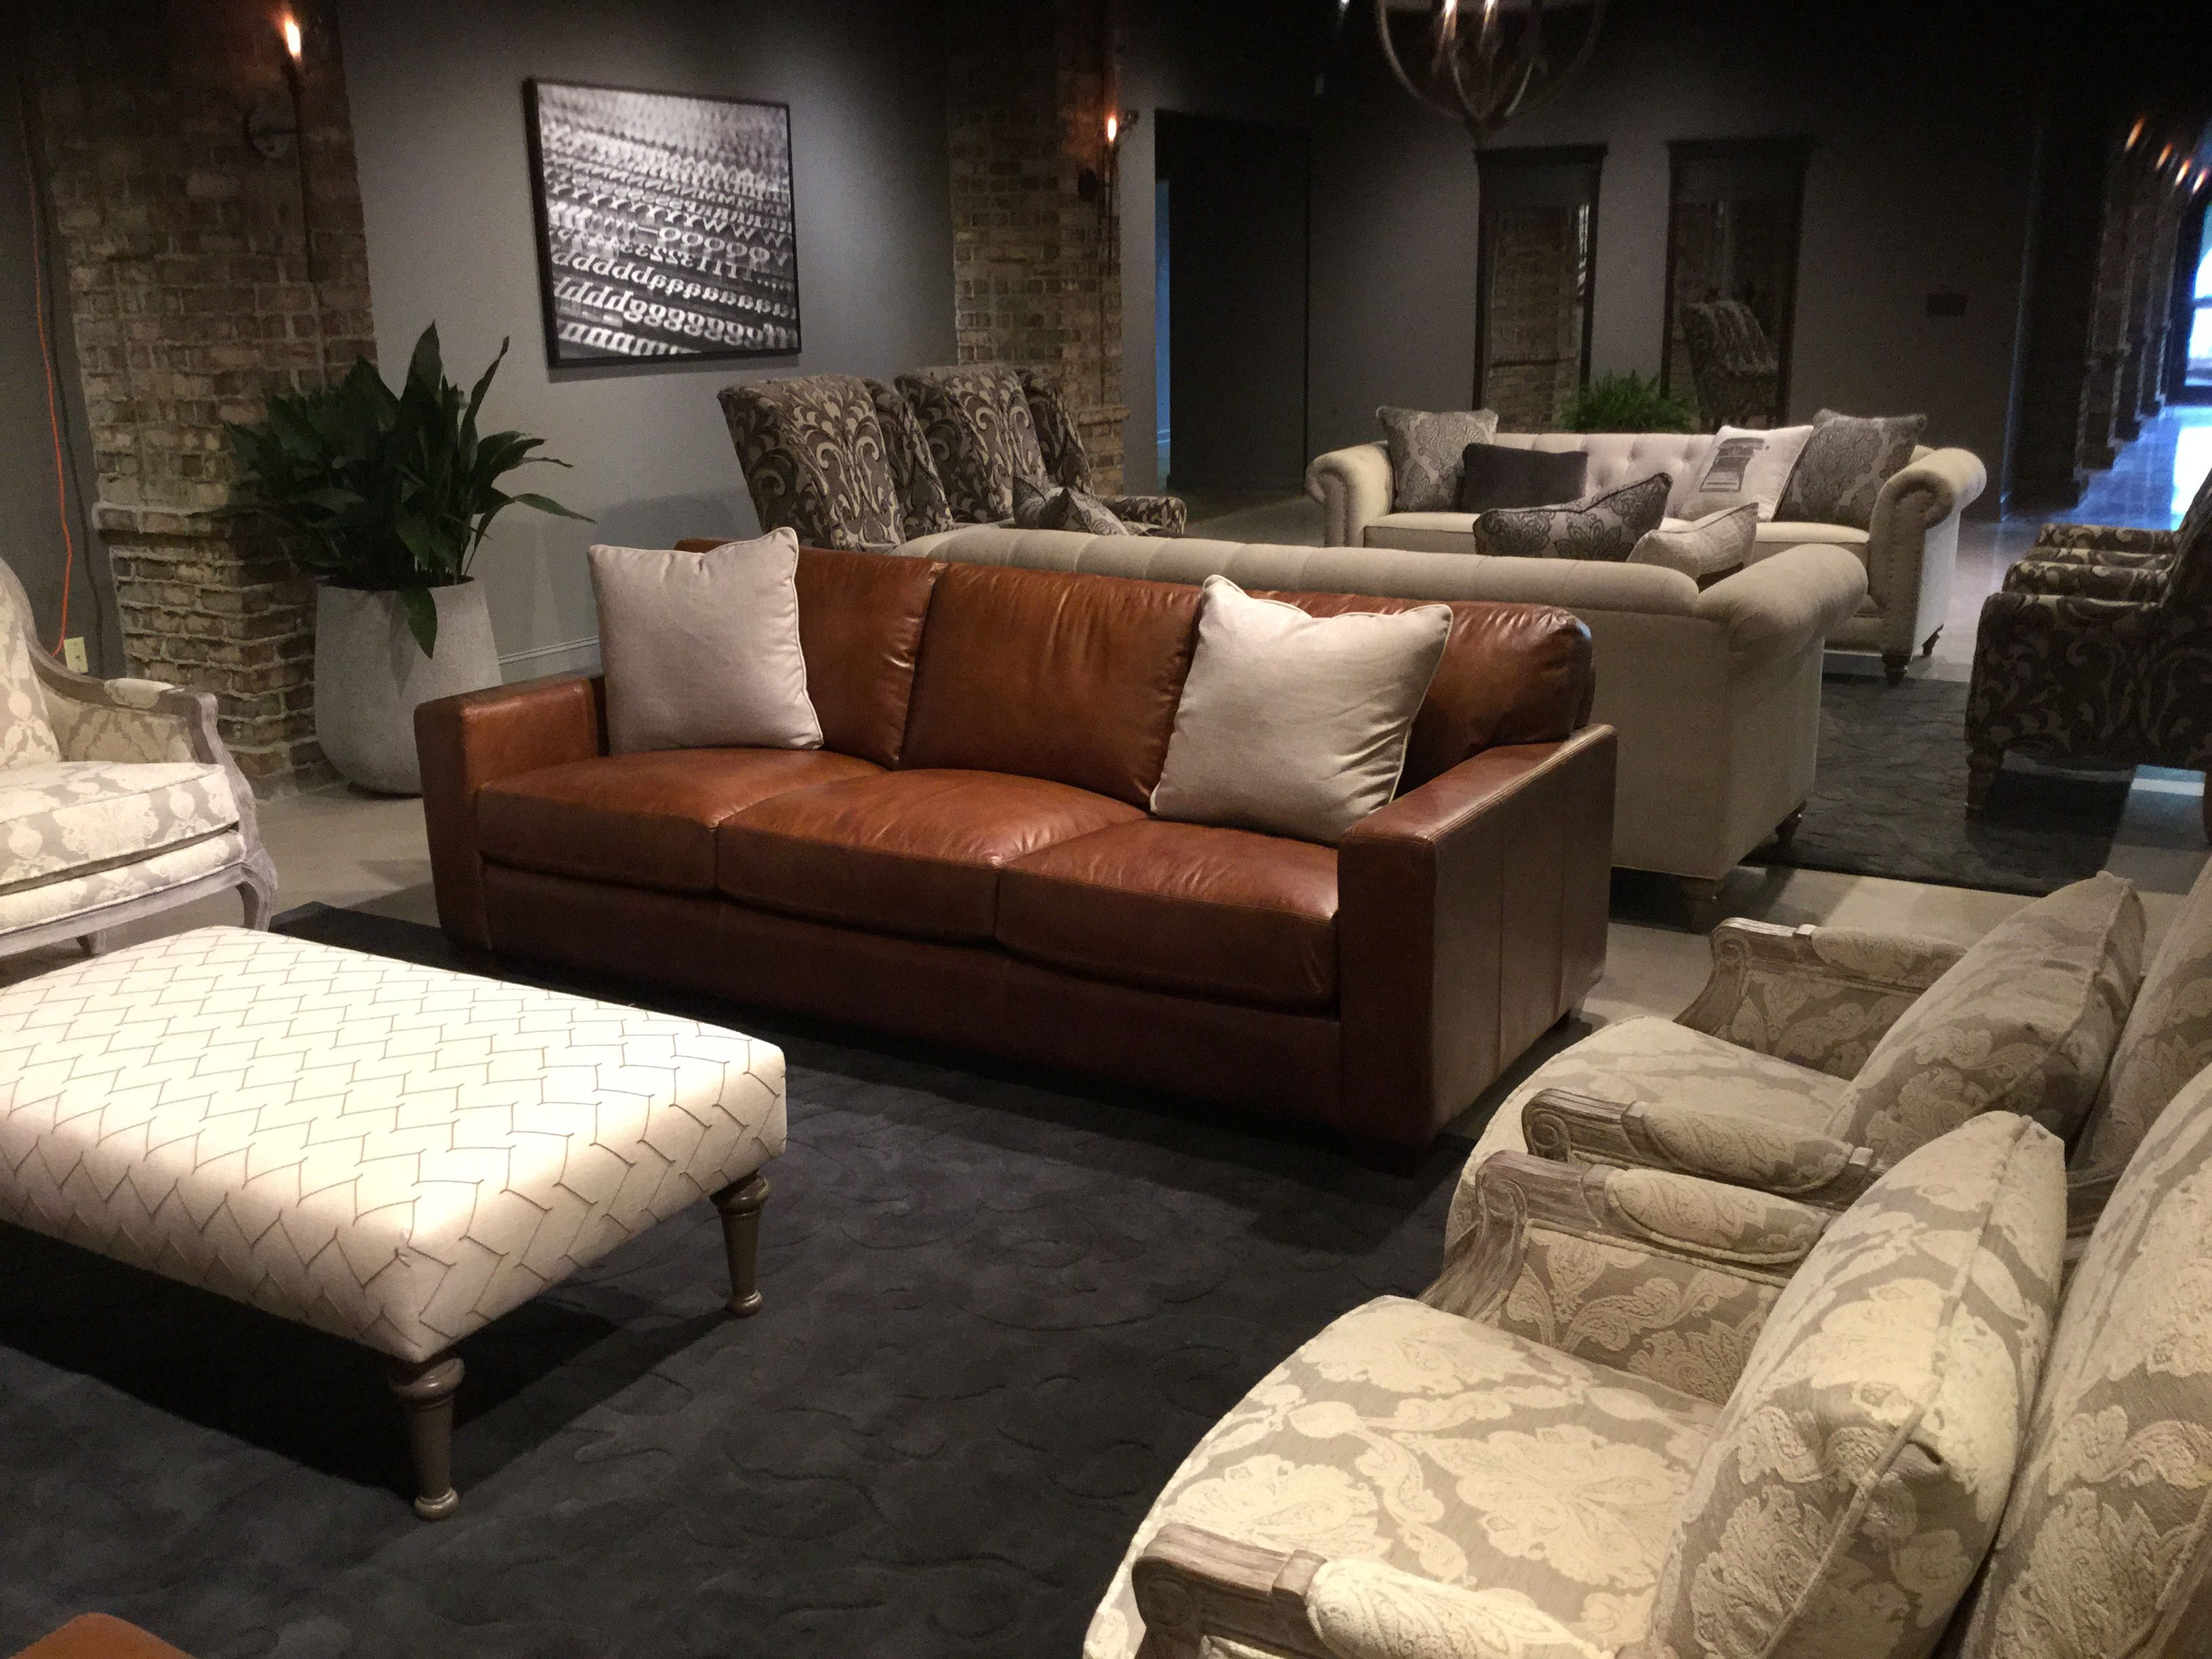 Encore Leather Sofacraftmaster Furniture | Sofas | Pinterest Intended For Gina Grey Leather Sofa Chairs (Image 9 of 25)